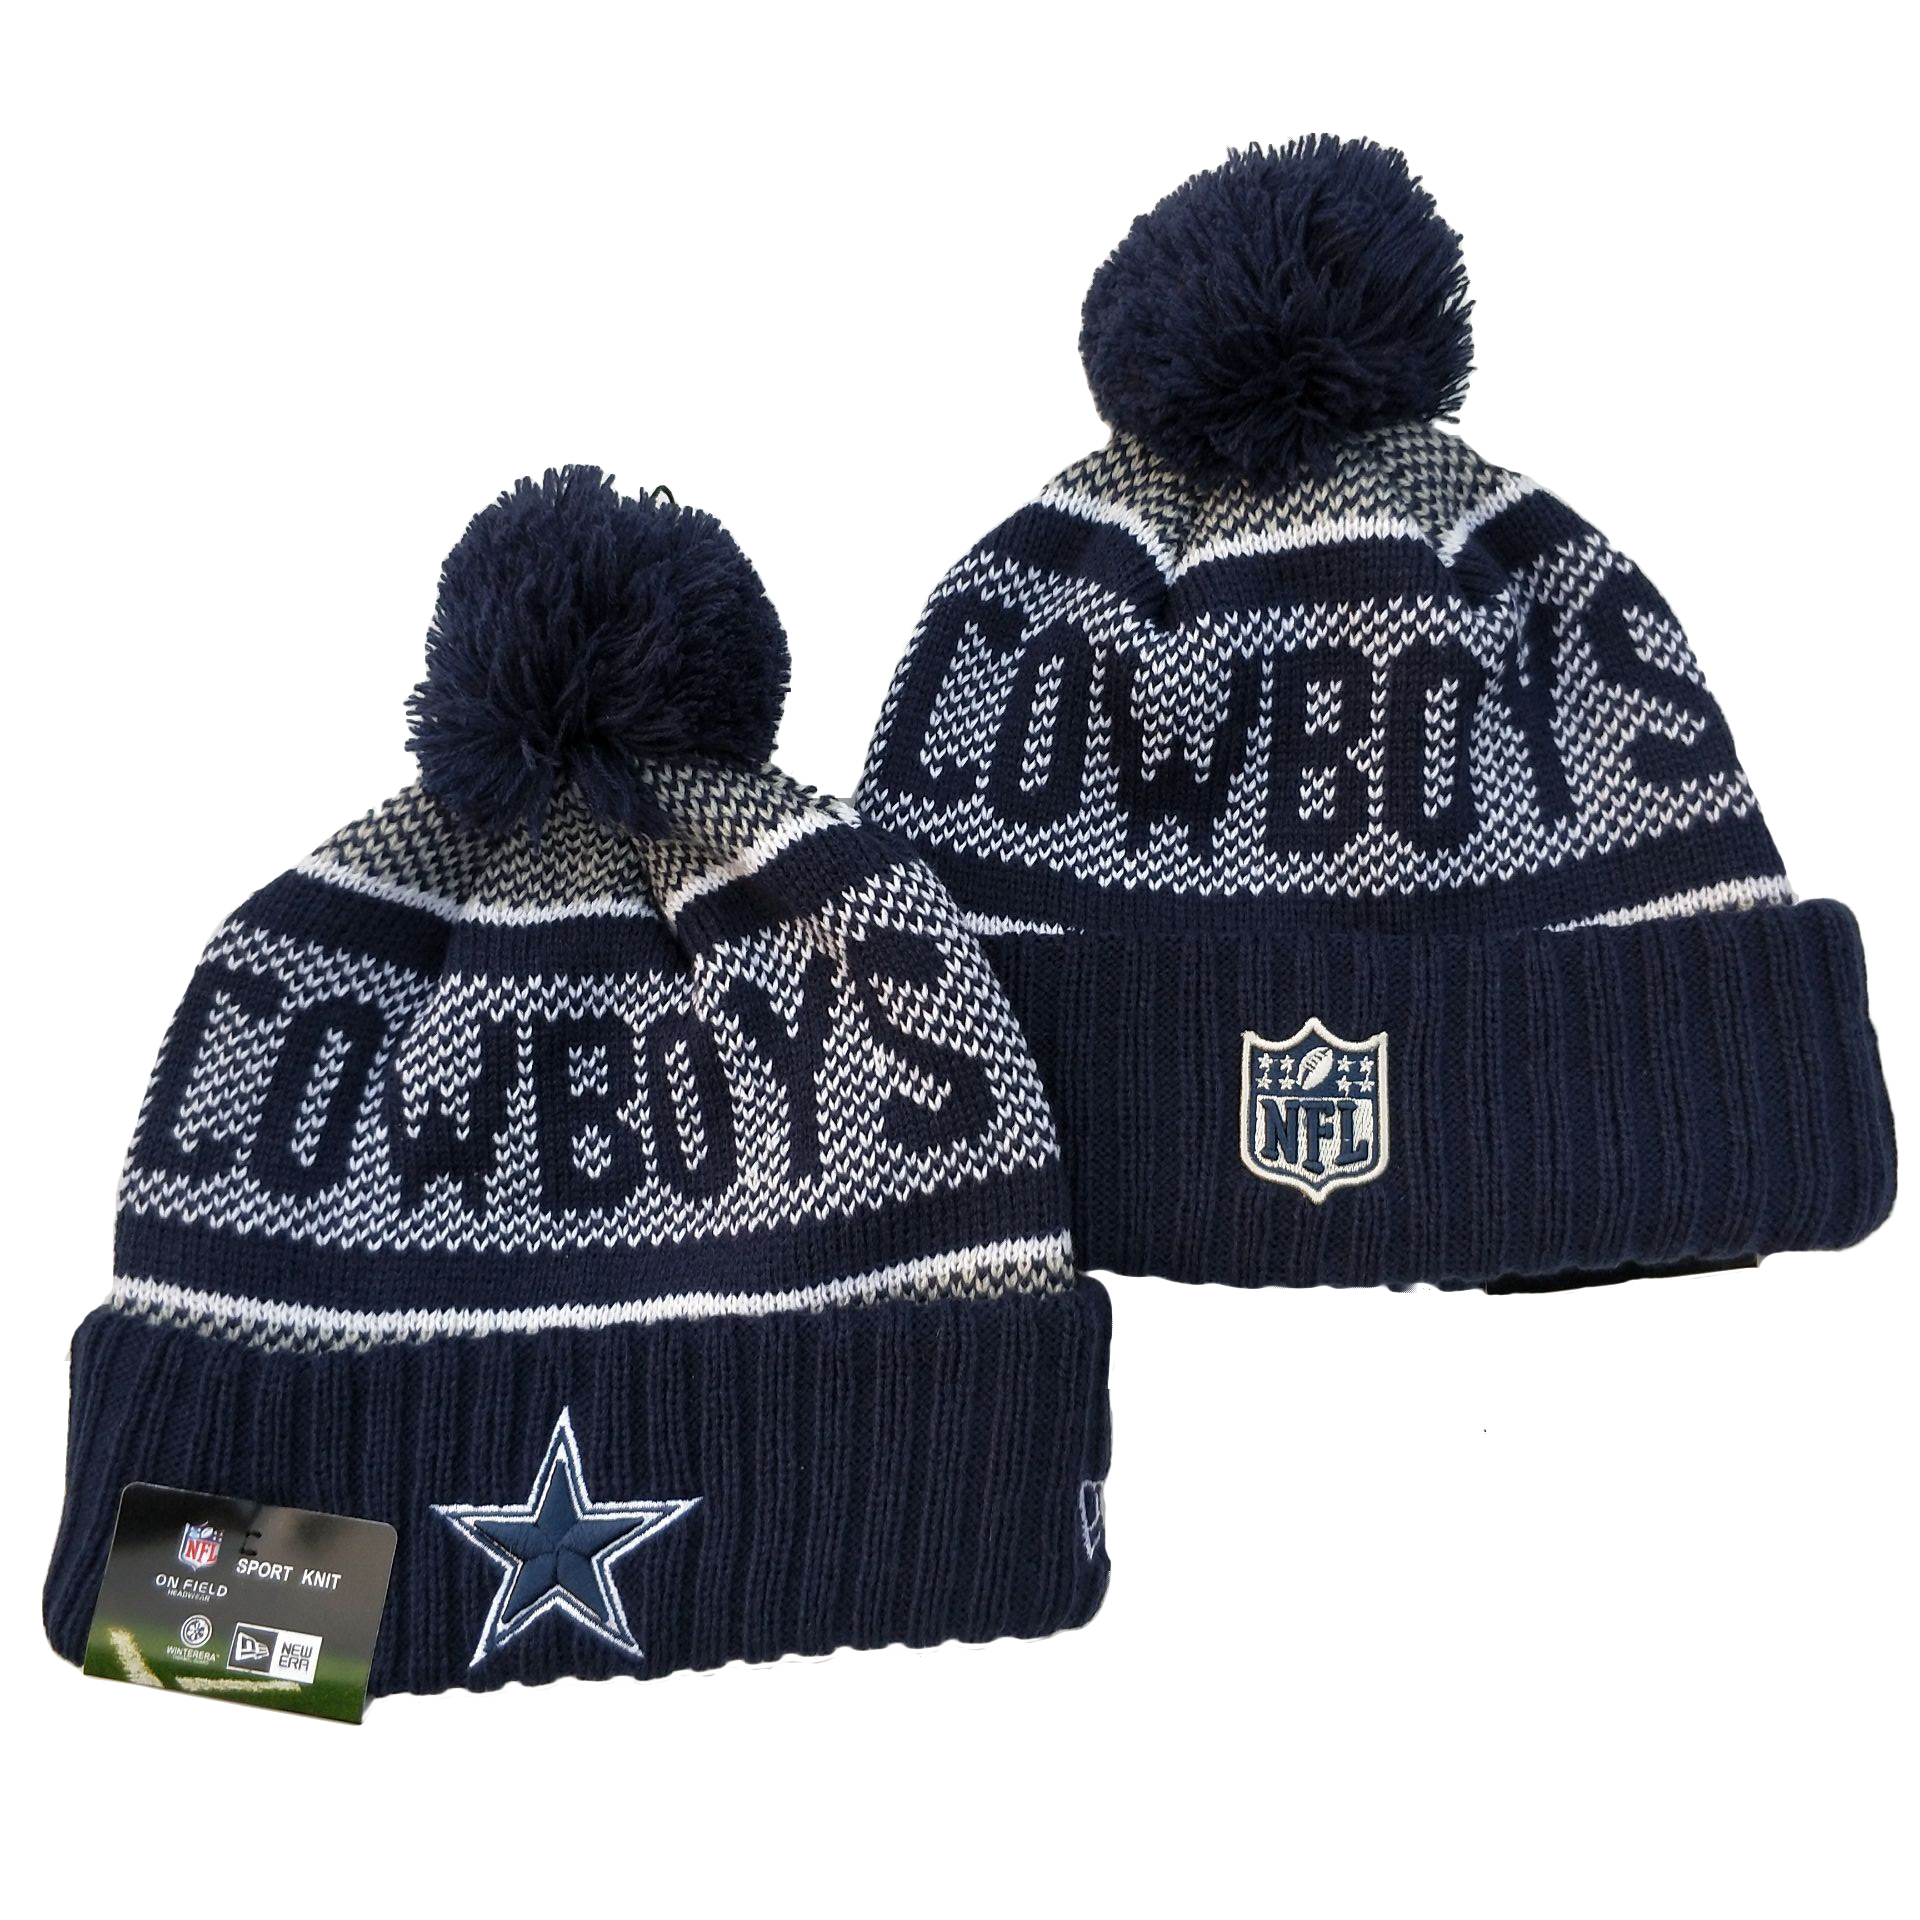 Dallas Cowboys Knit Hats 078